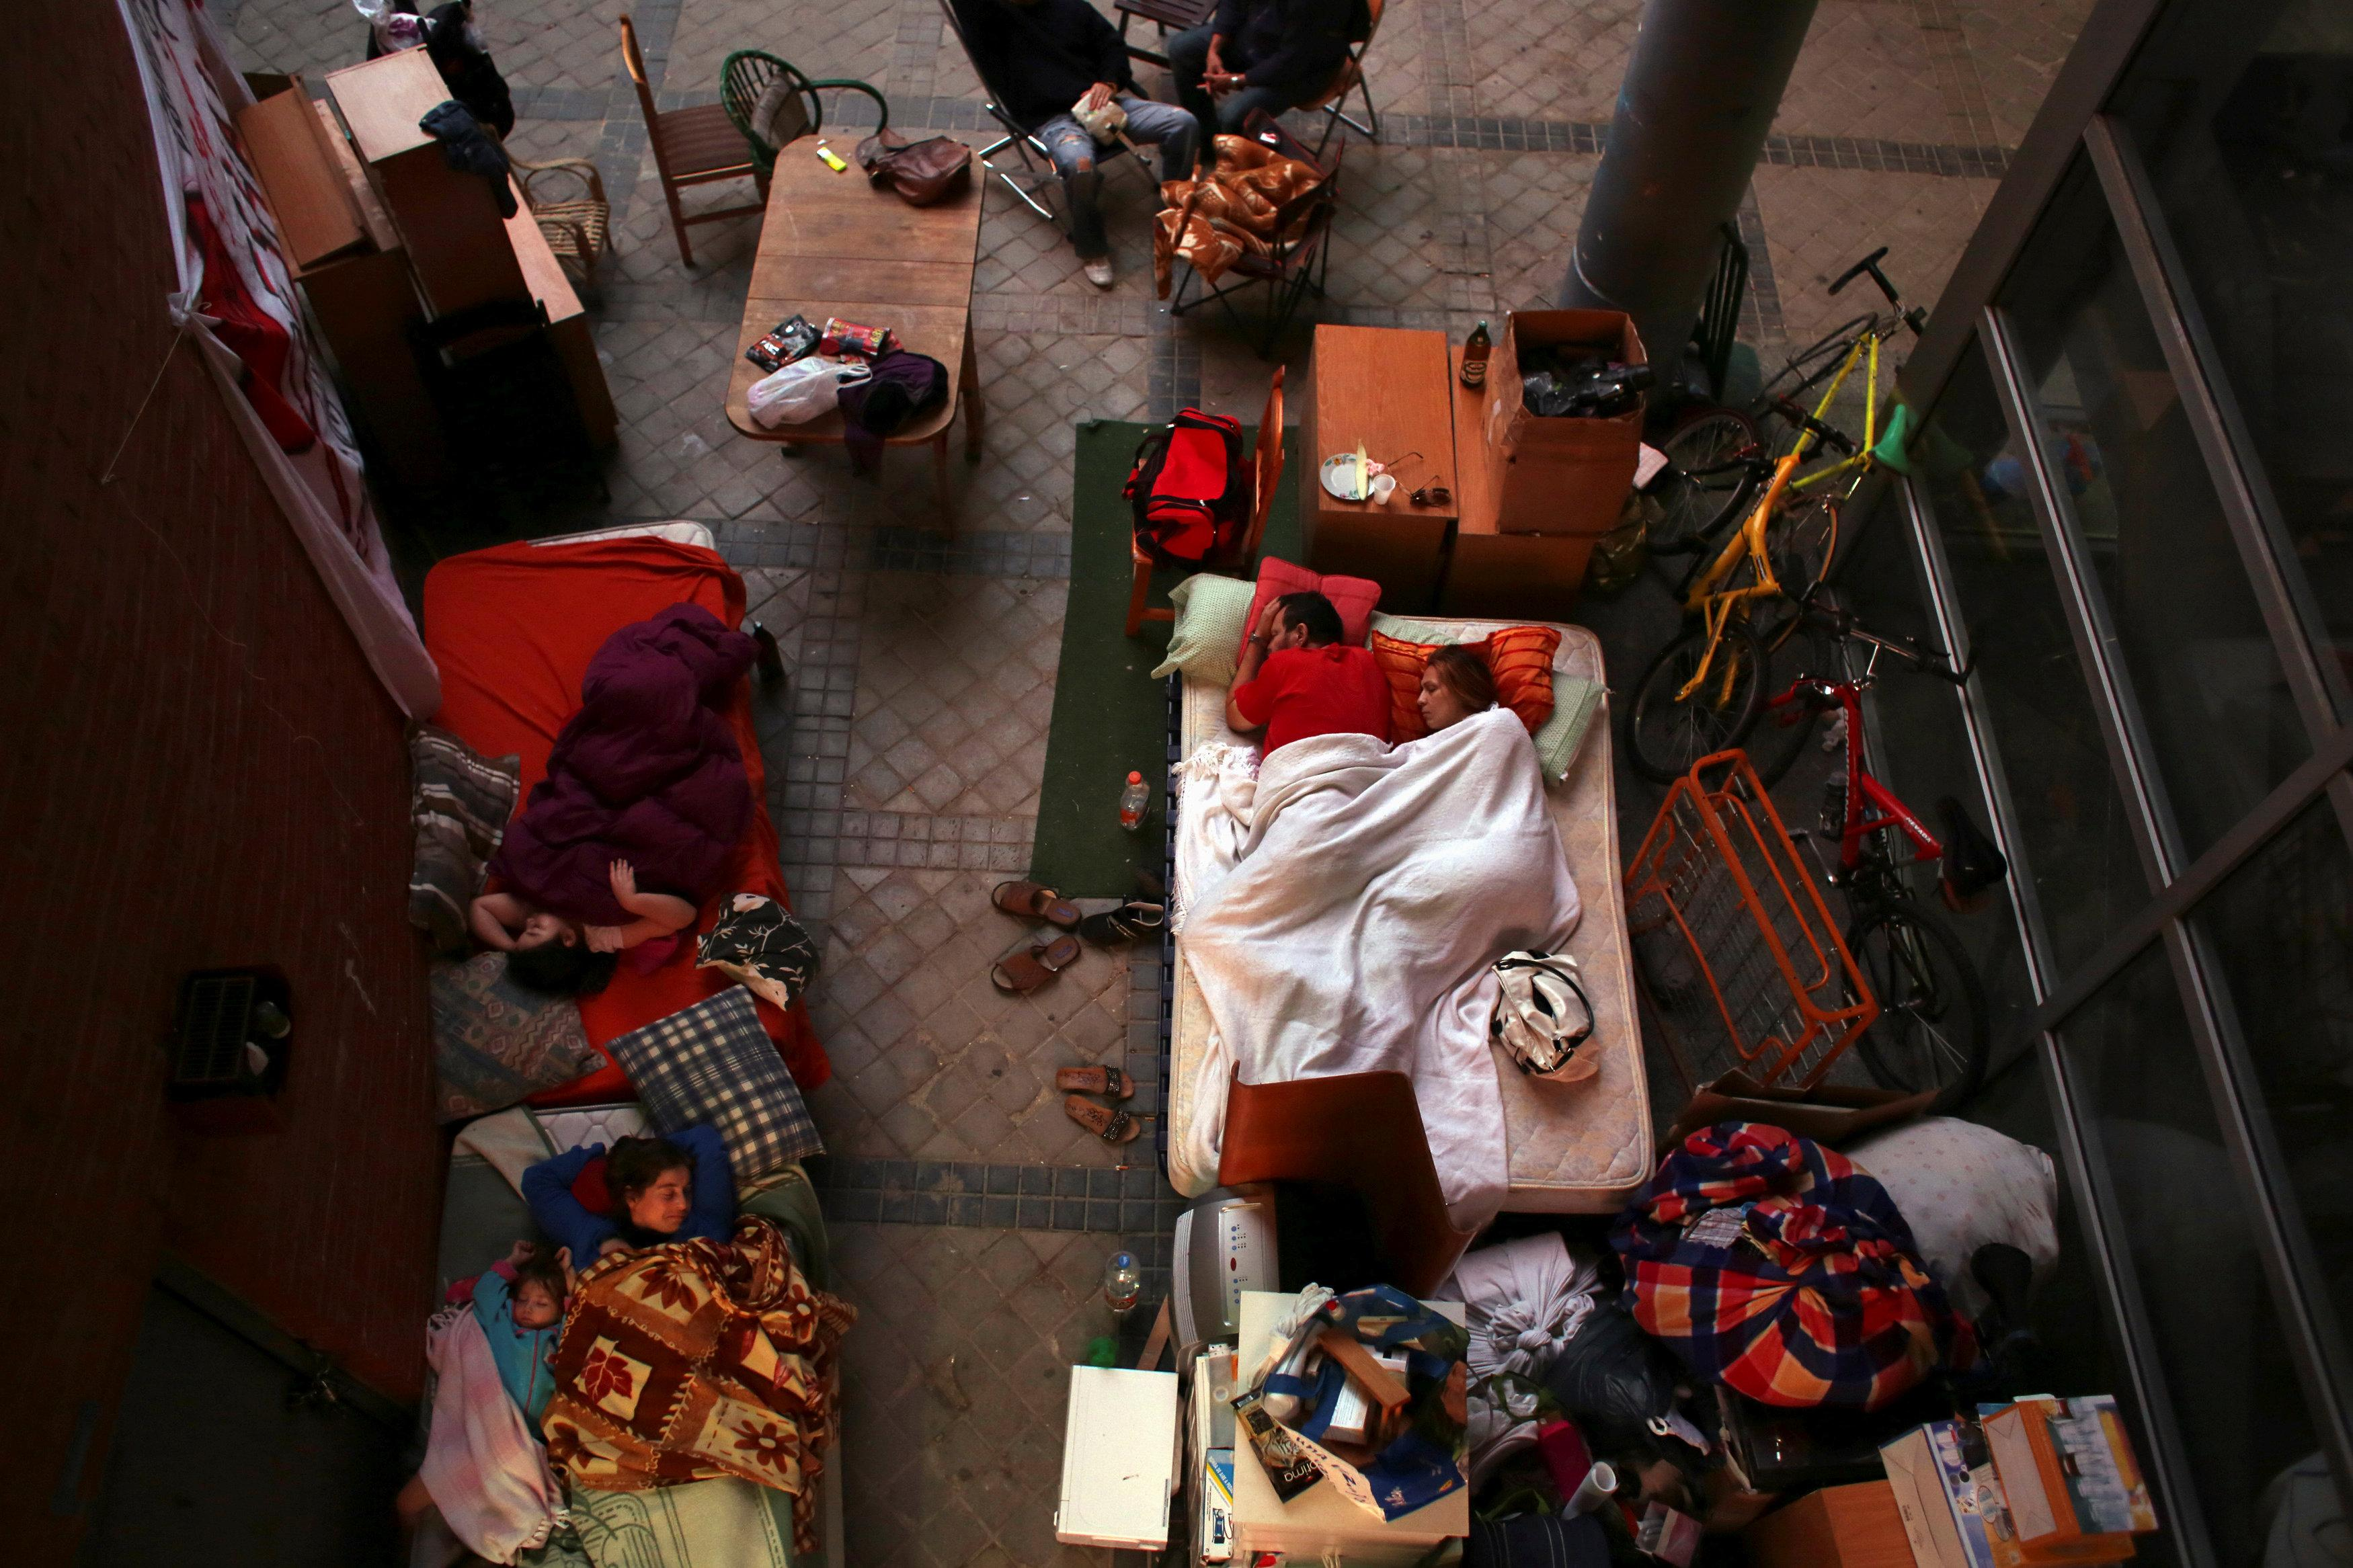 Maria Isabel Rodriguez Romero and her husband Benigno Ferrer (under white blanket) sleep next to their daughter Maria Isabel Ferrer Rodriguez, 8, (top L) outside the apartment where they were evicted from in Madrid, Spain, September 27, 2013.   Susana Vera/File photo